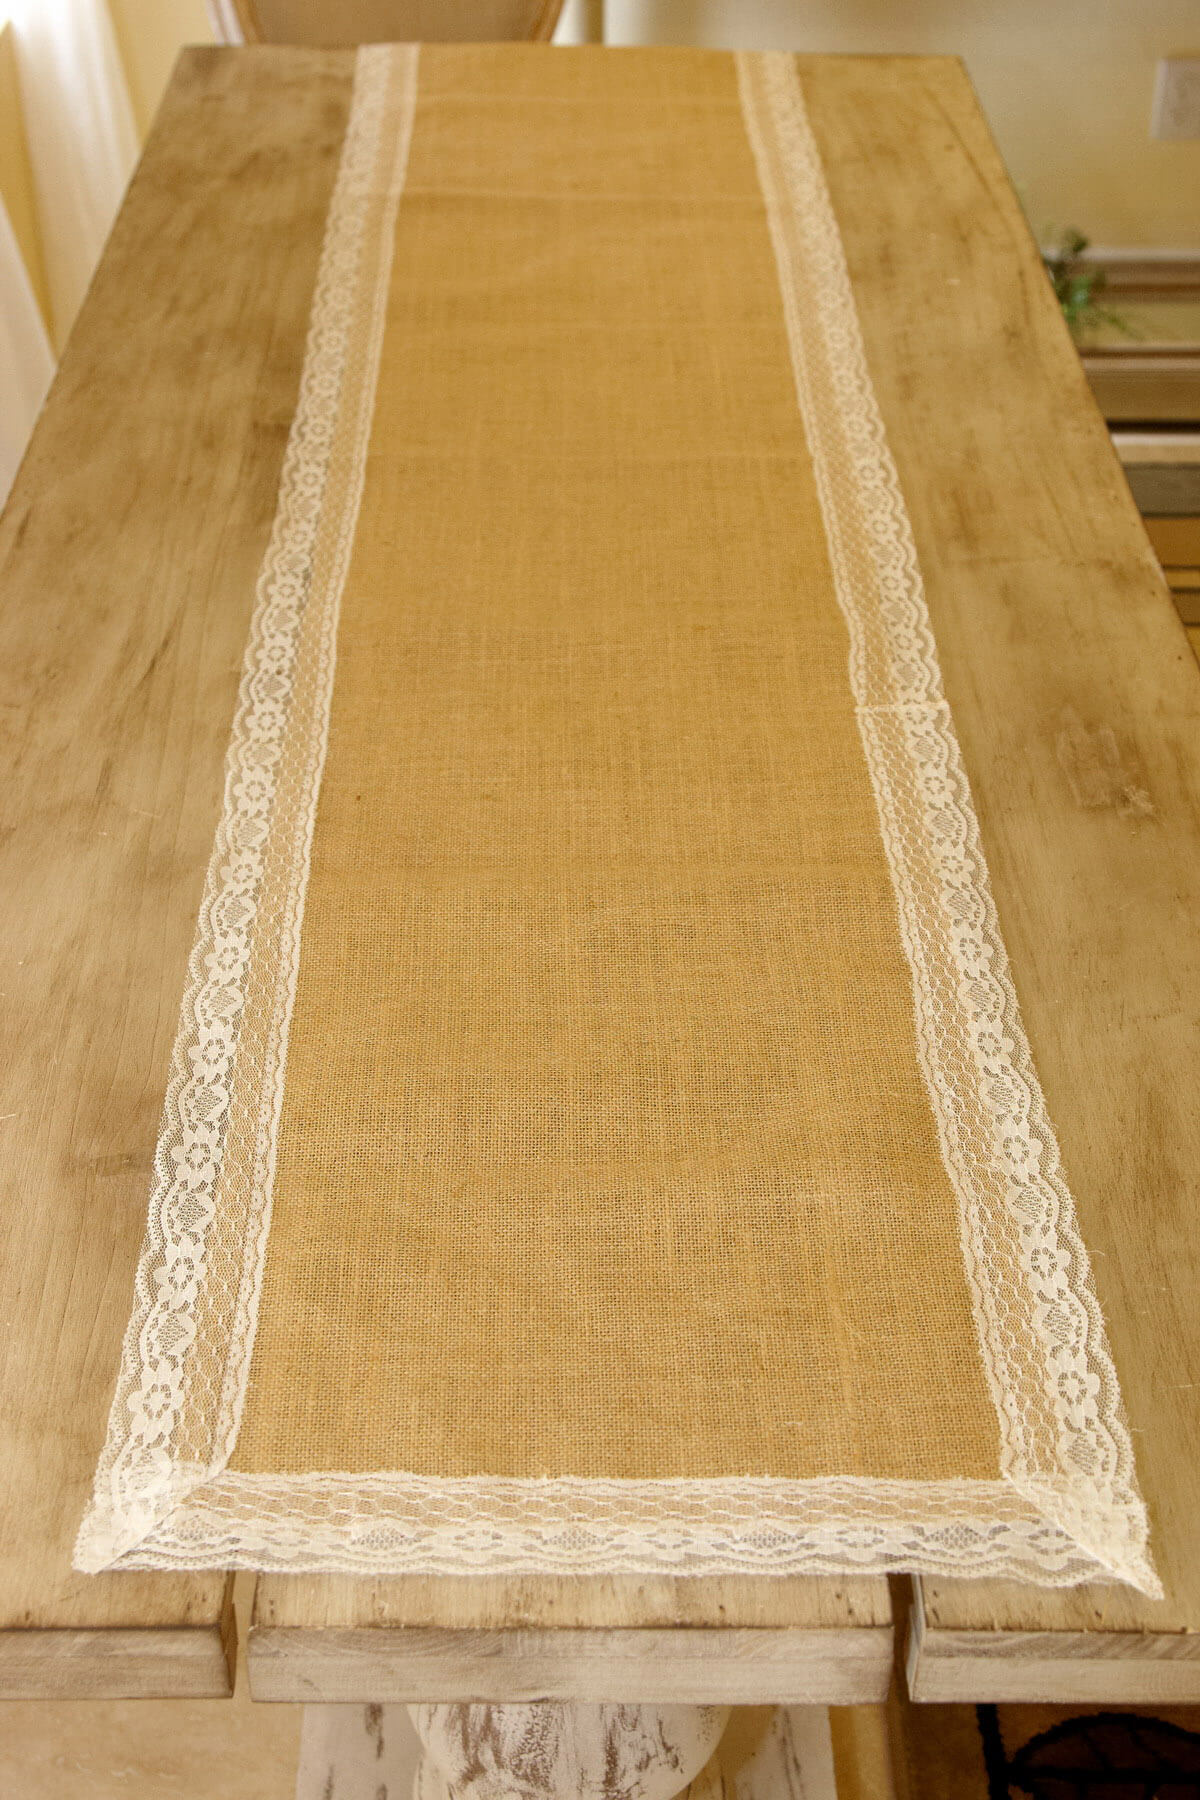 Burlap Amp Lace Table Runner 16 X 74in